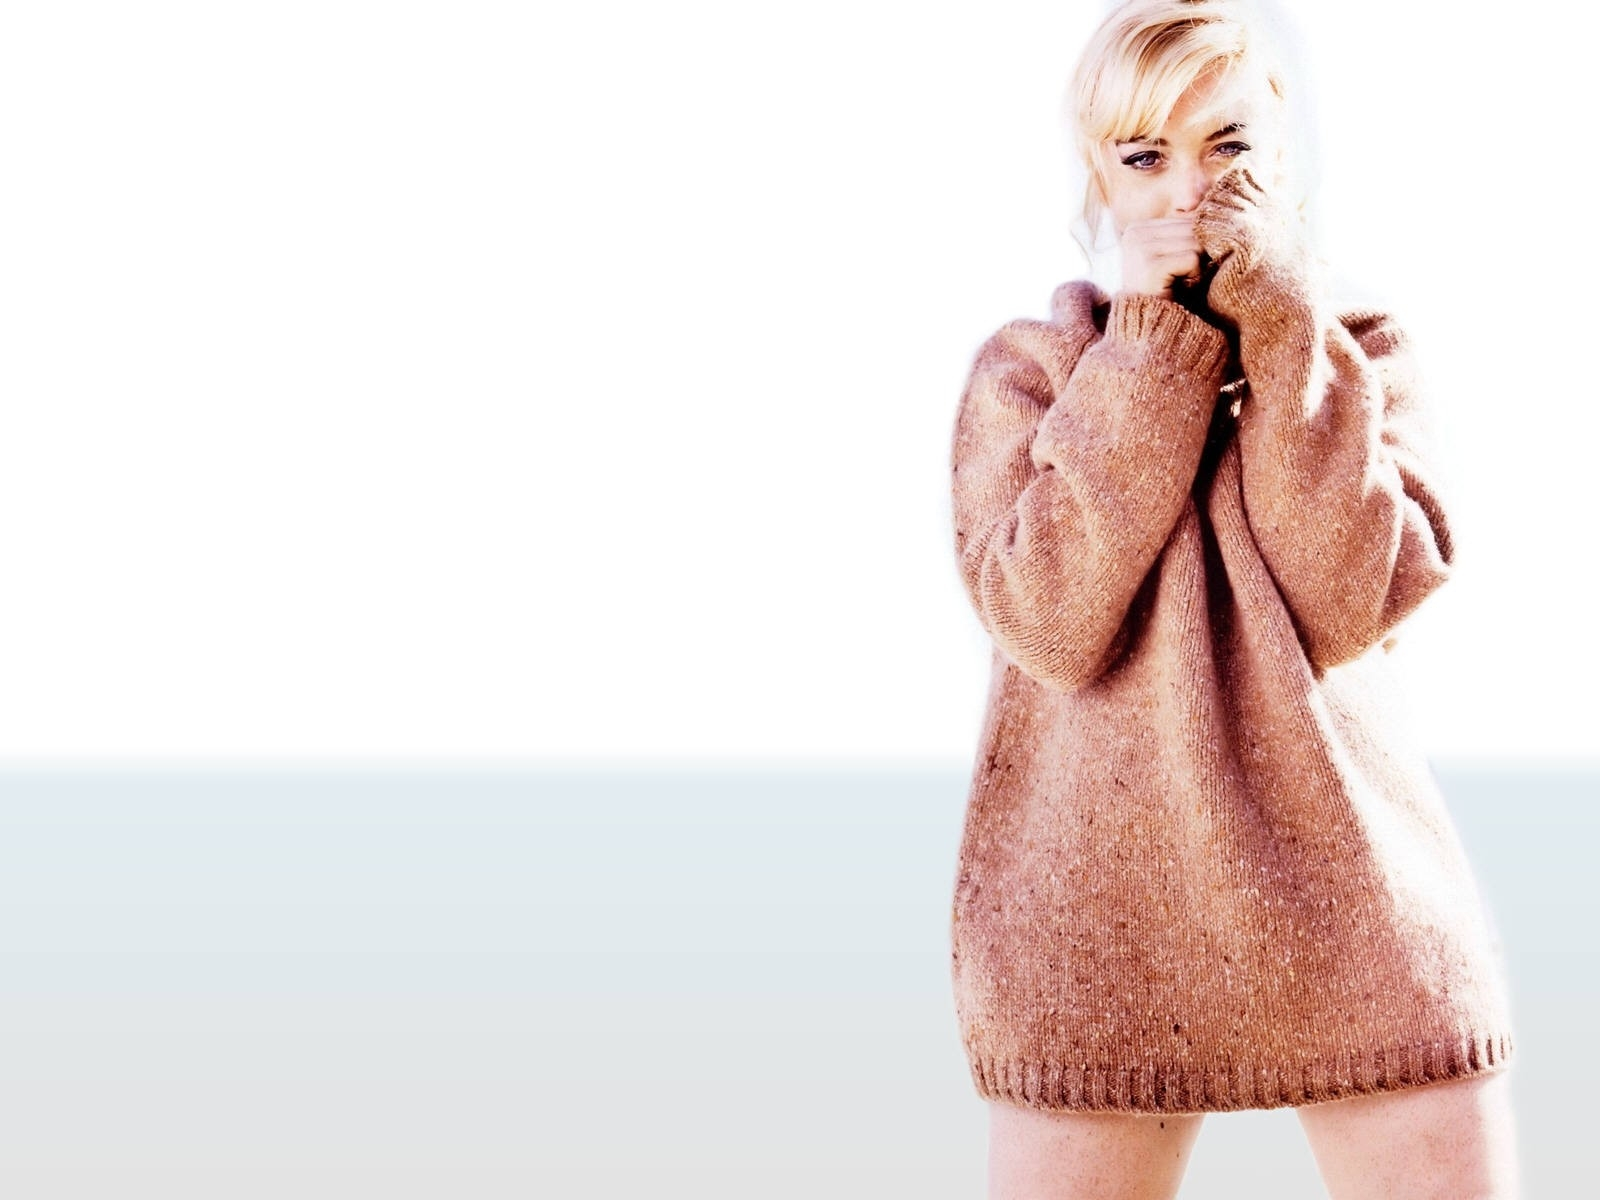 Wallpaper di Lindsay Lohan come Marilyn in 'Let's Make Love'